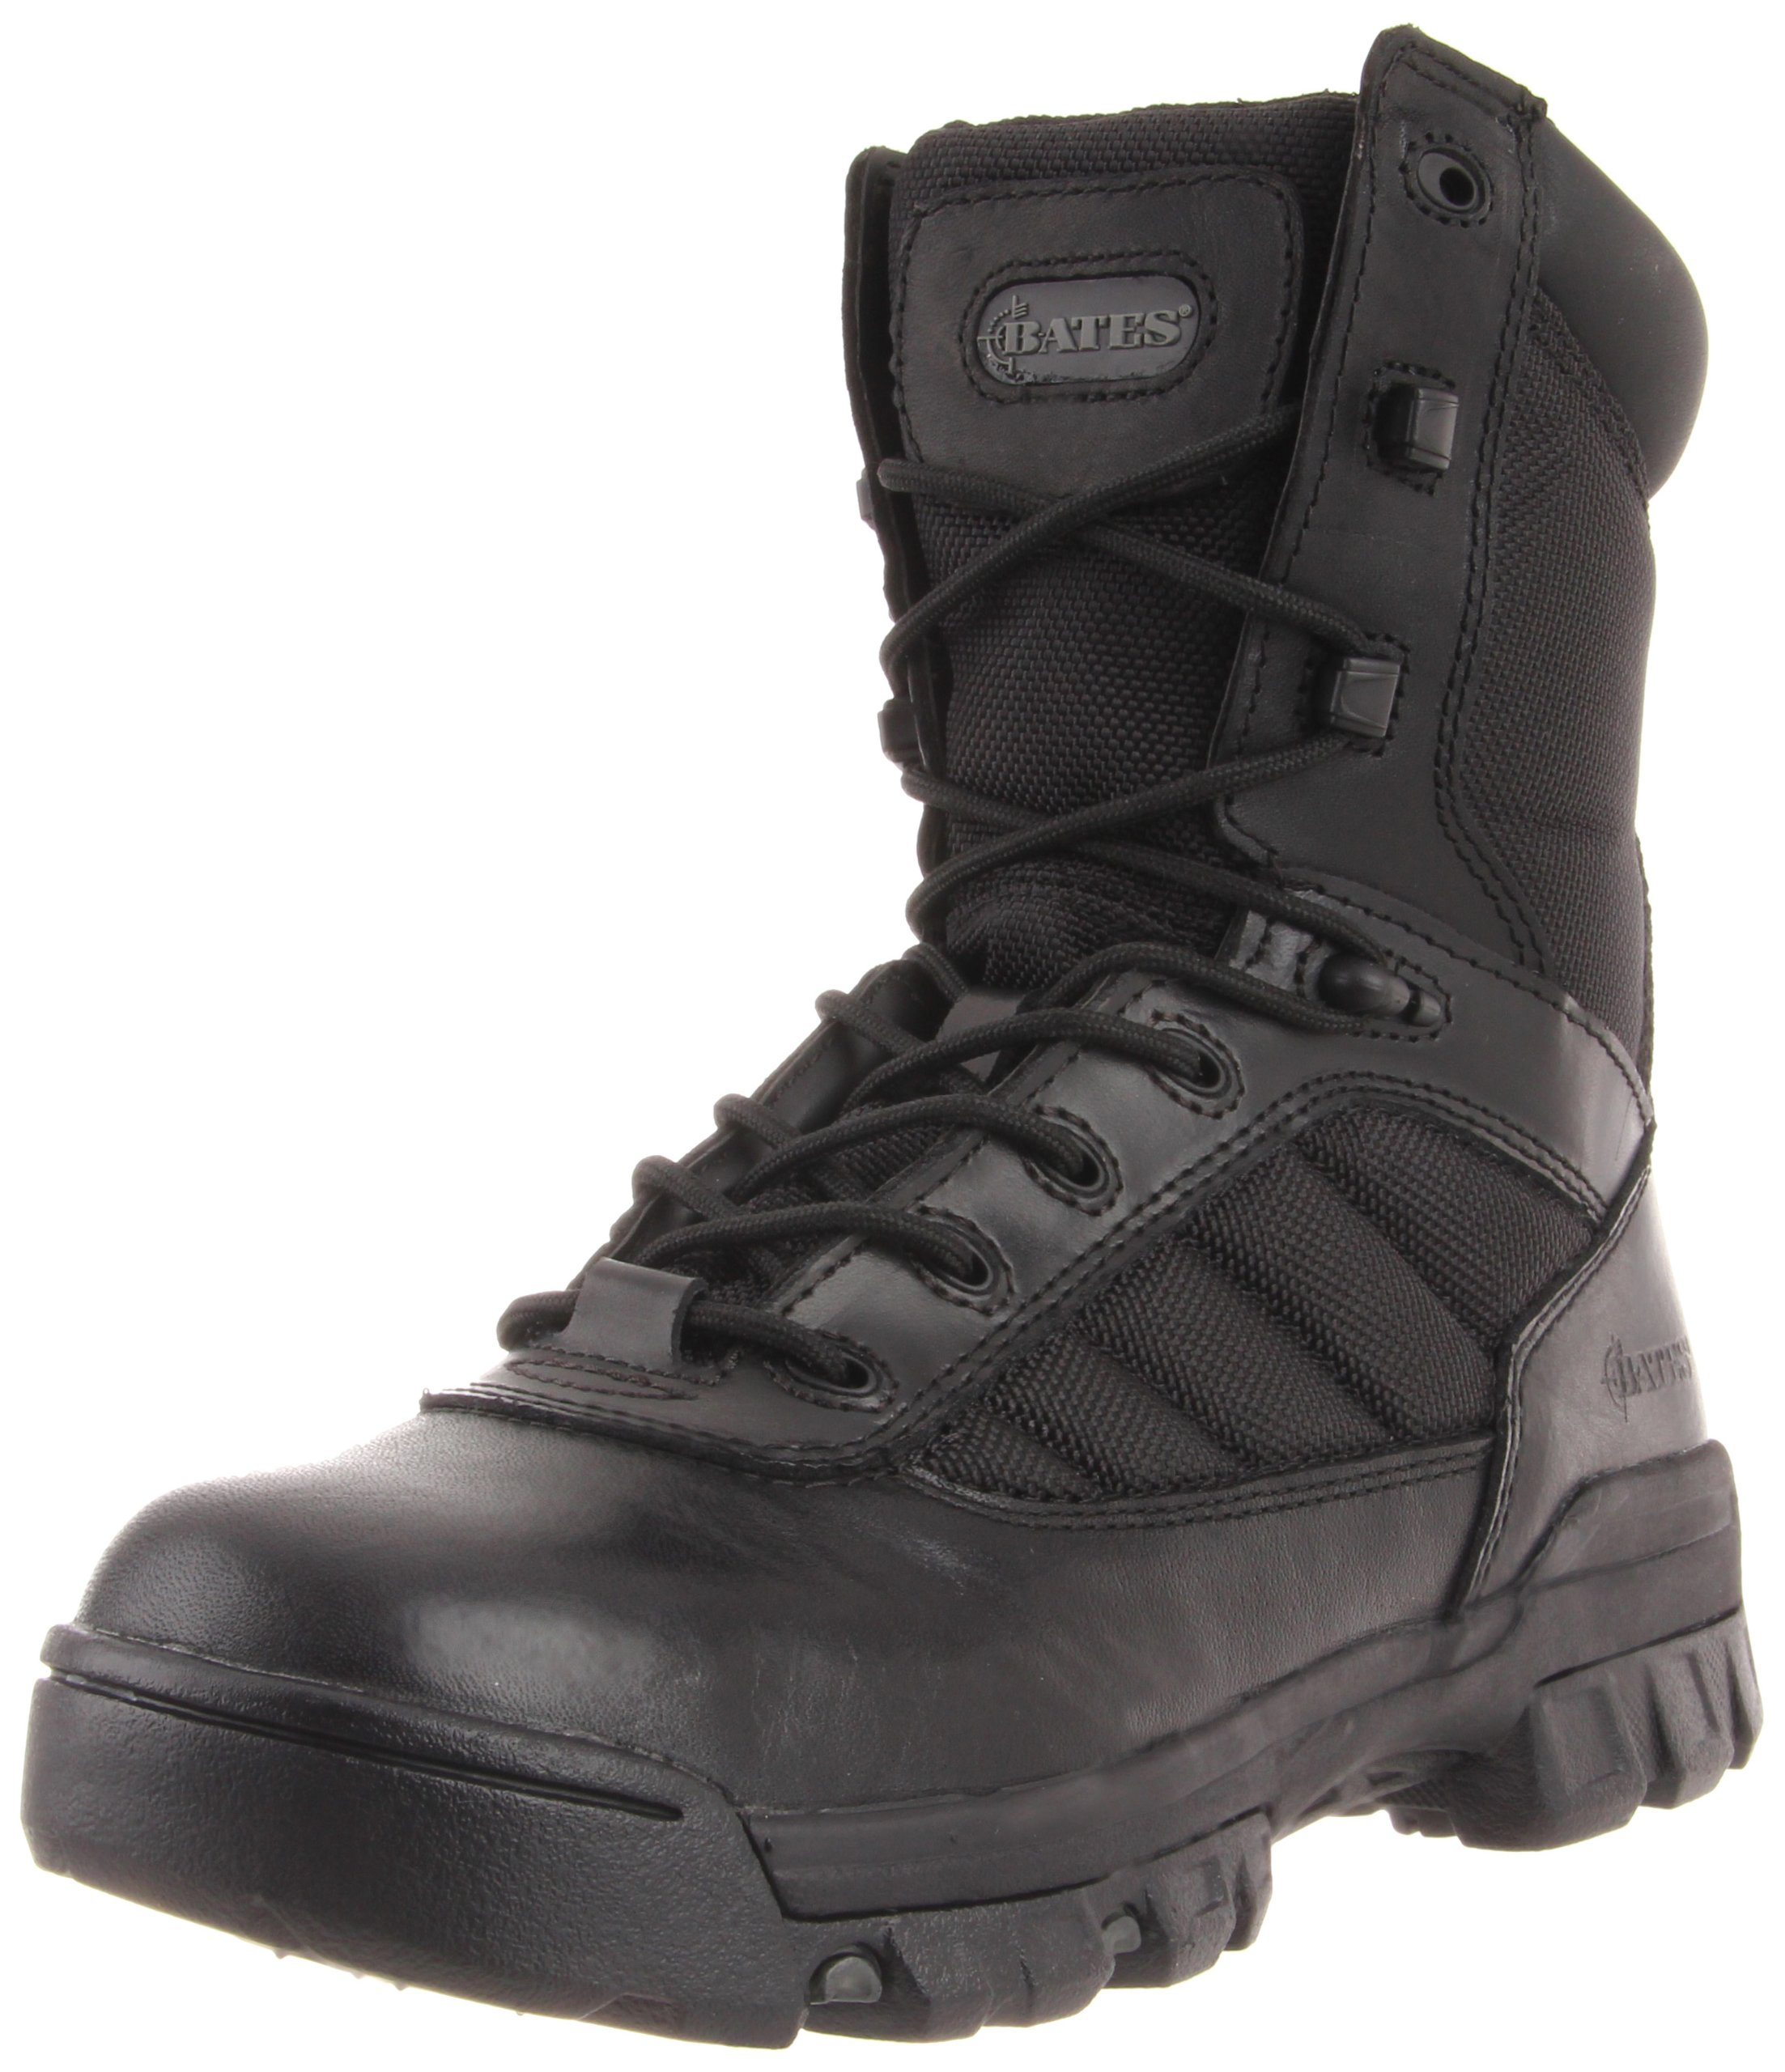 Bates Women's Ultra-Lites 8 Inches Tactical Sport Side Zip Boot,Black,8 M US by Bates